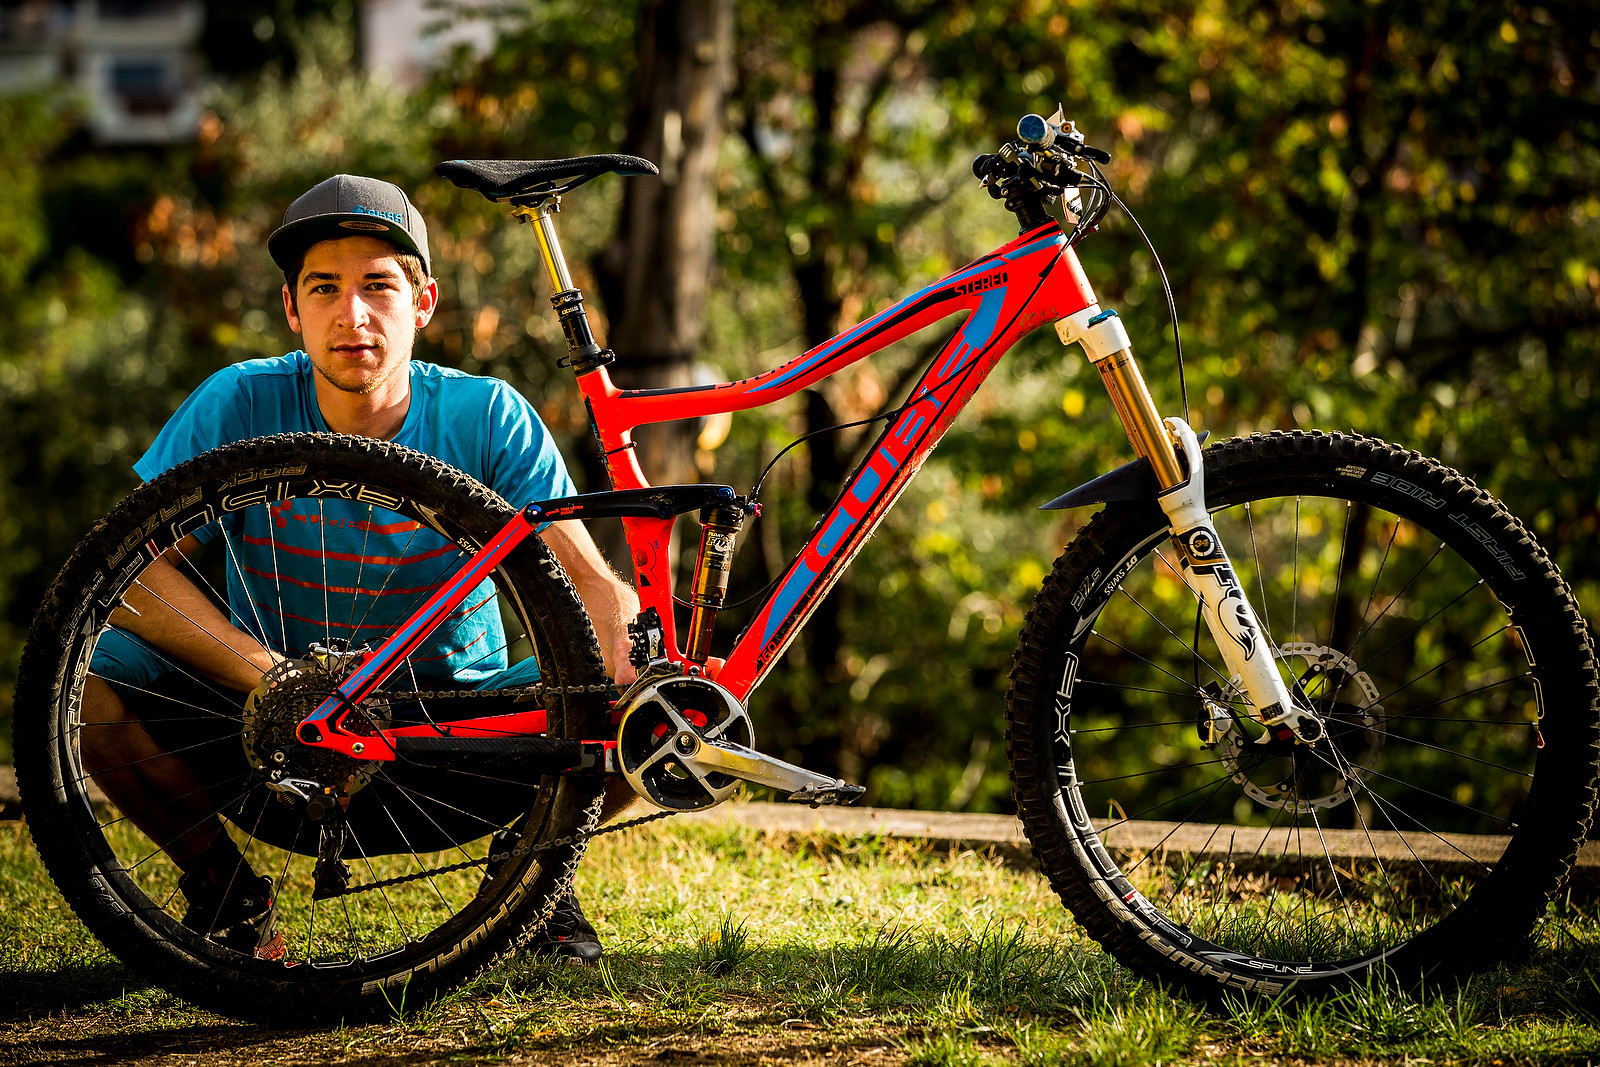 WINNING BIKE: Nico Lau's Cube Stereo 160 Super HPC 27.5 - WINNING BIKE: Nico Lau's Cube Stereo 160 Super HPC 27.5 - Mountain Biking Pictures - Vital MTB